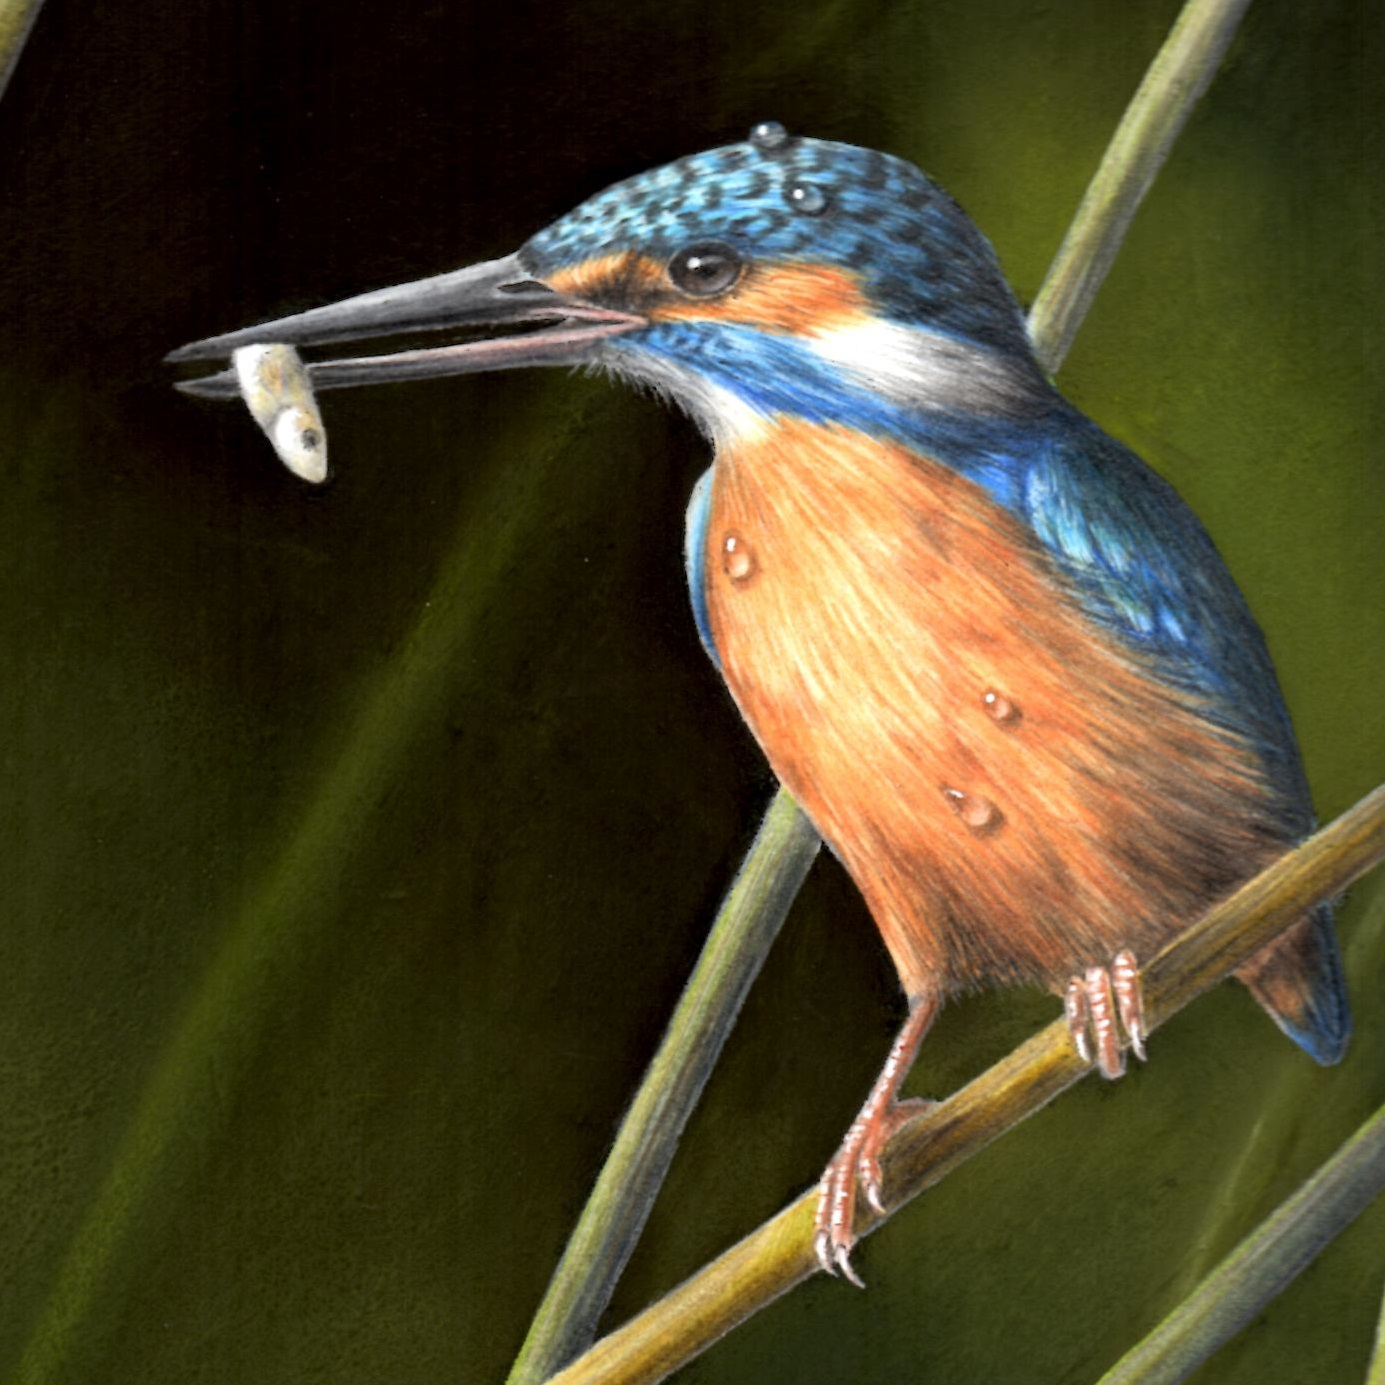 Coloured Pencil Drawing Kingfisher Tuesday 2nd April 2019 The